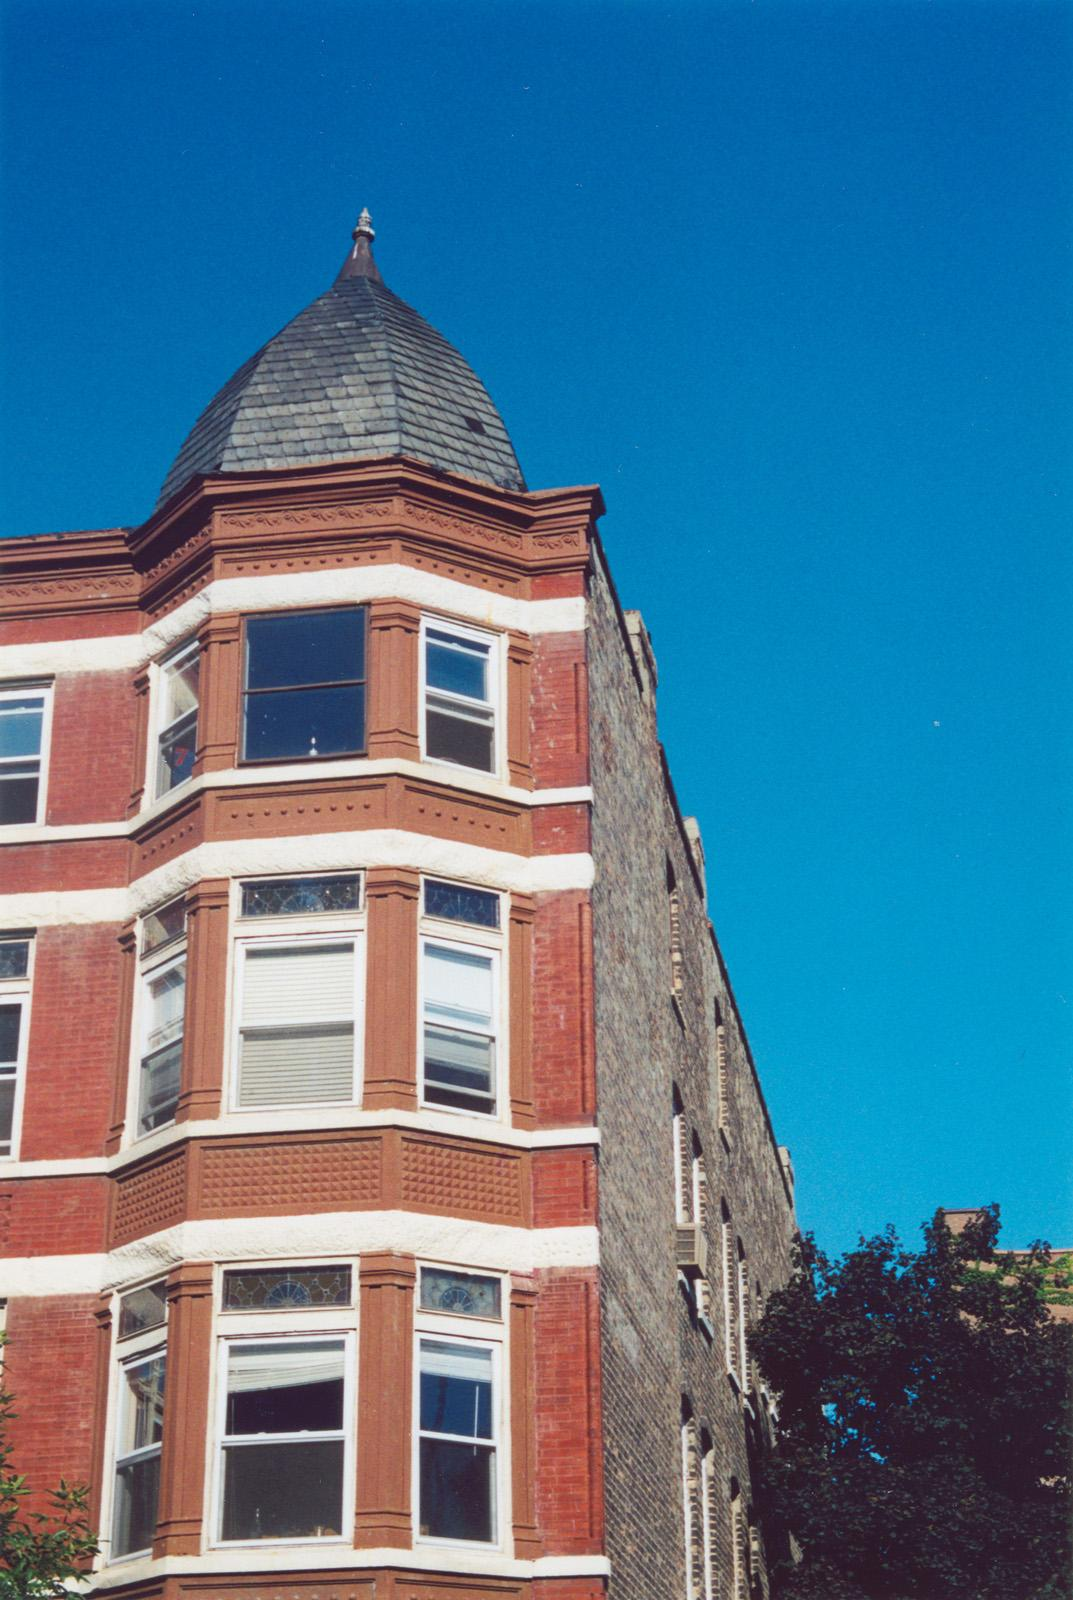 1947 N. Halsted St.; Apartment; Three-sided bay